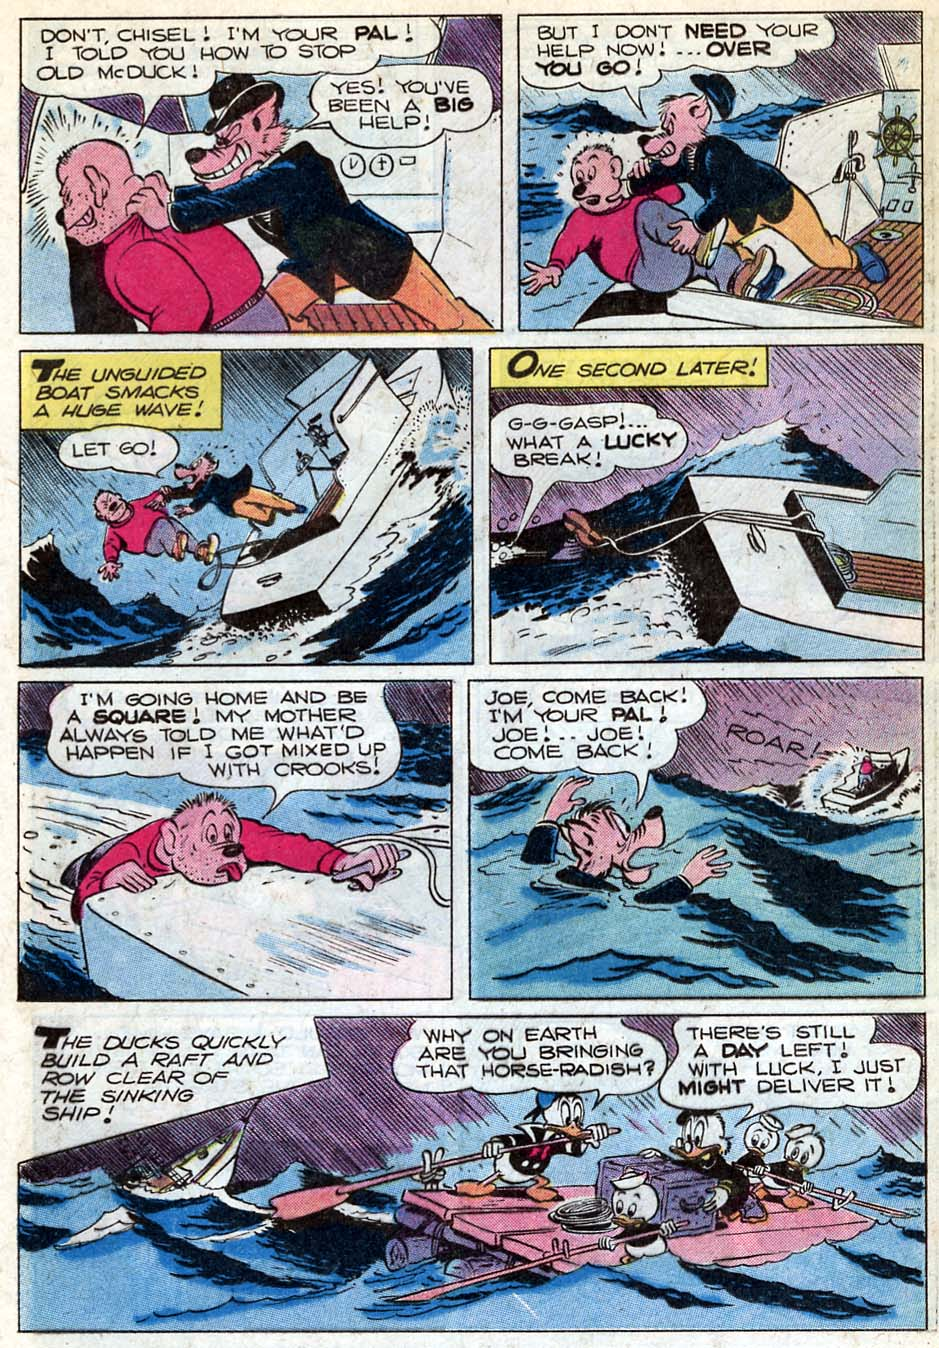 om/uncle-scrooge-1953/iss #224 - English 25